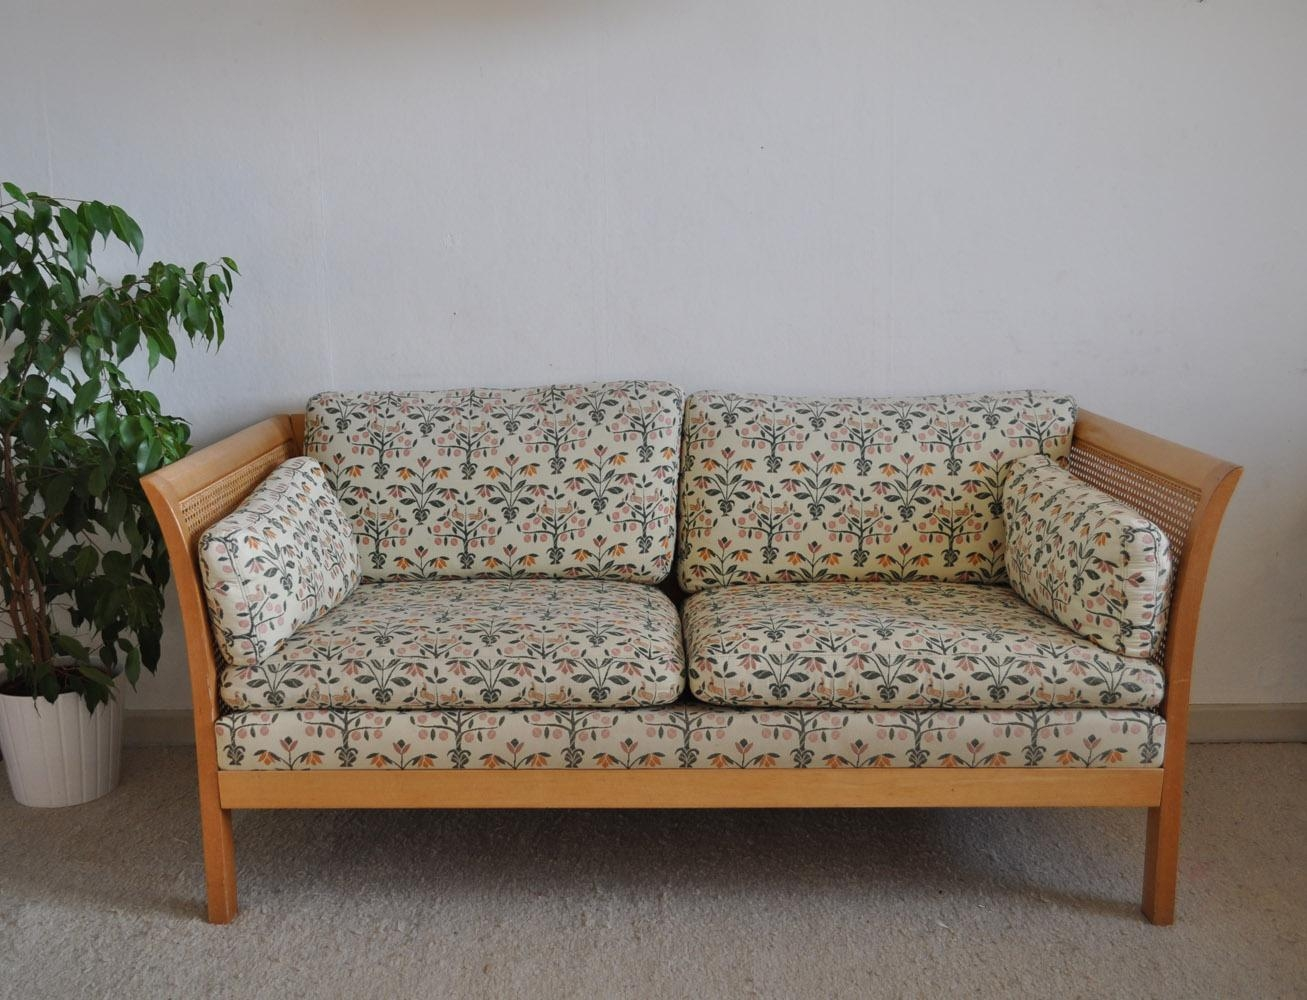 Vintage Rattan Two Seater Sofa From Arne Norell For Sale At Pamono For Two Seater Sofas (View 15 of 20)